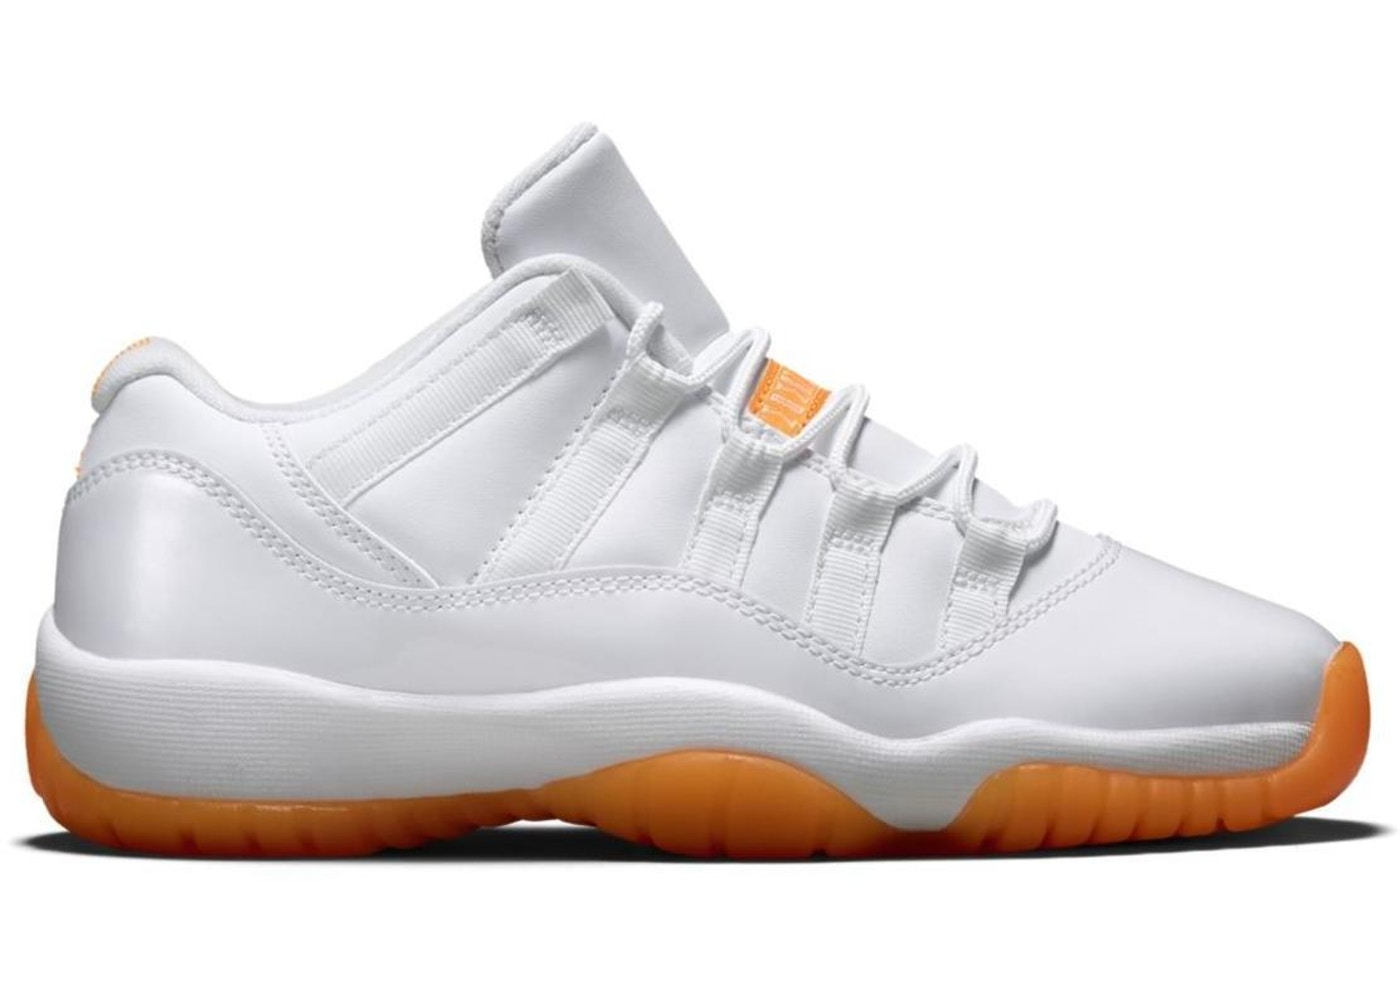 more photos 179b5 27e9d Jordan 11 Retro Low Citrus 2015 (GS) - 580521-139